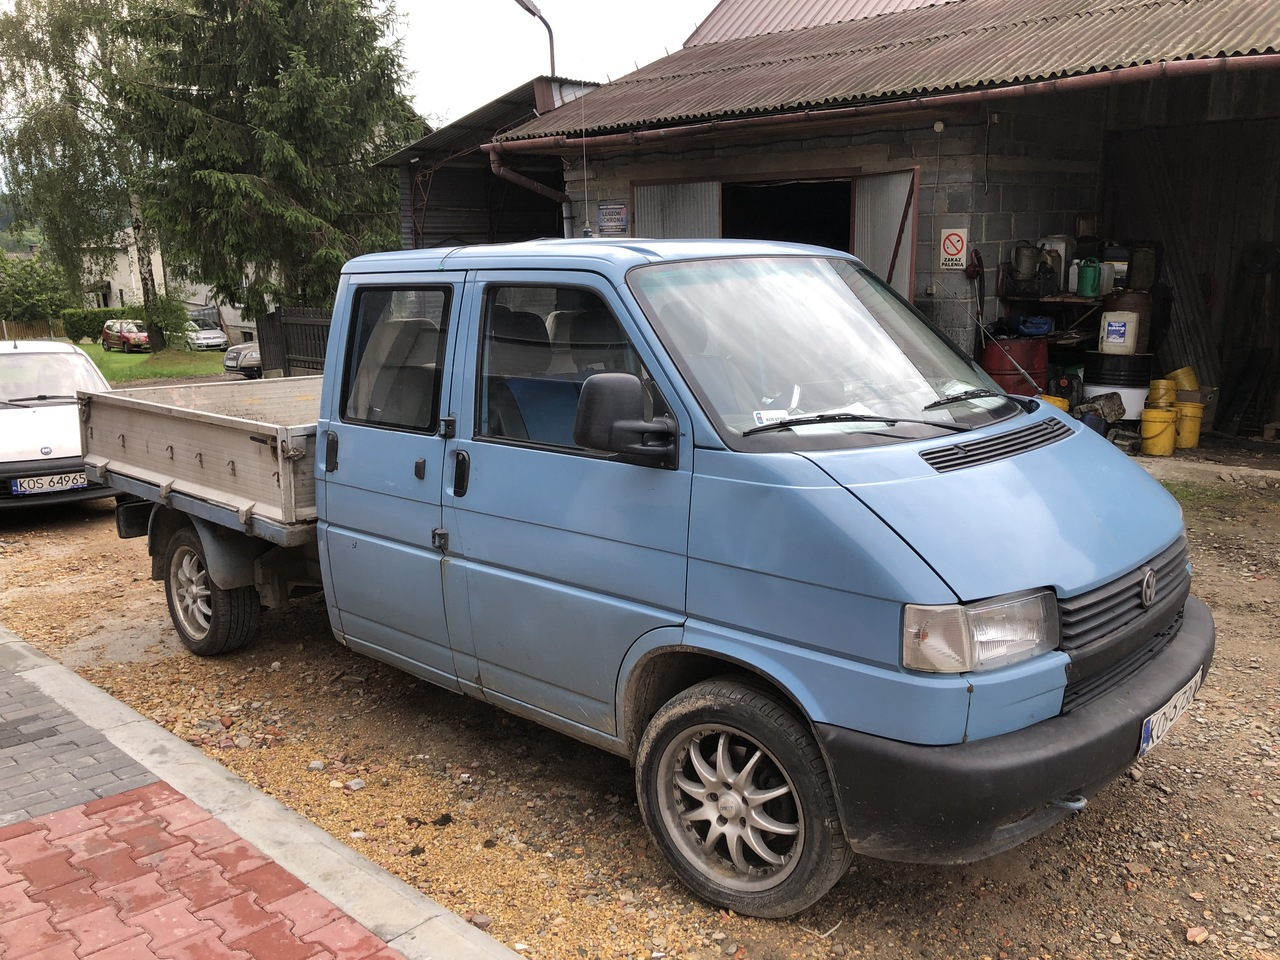 Admirable VW Transporter T4 Syncro flatbed van from Poland for sale at XB-58